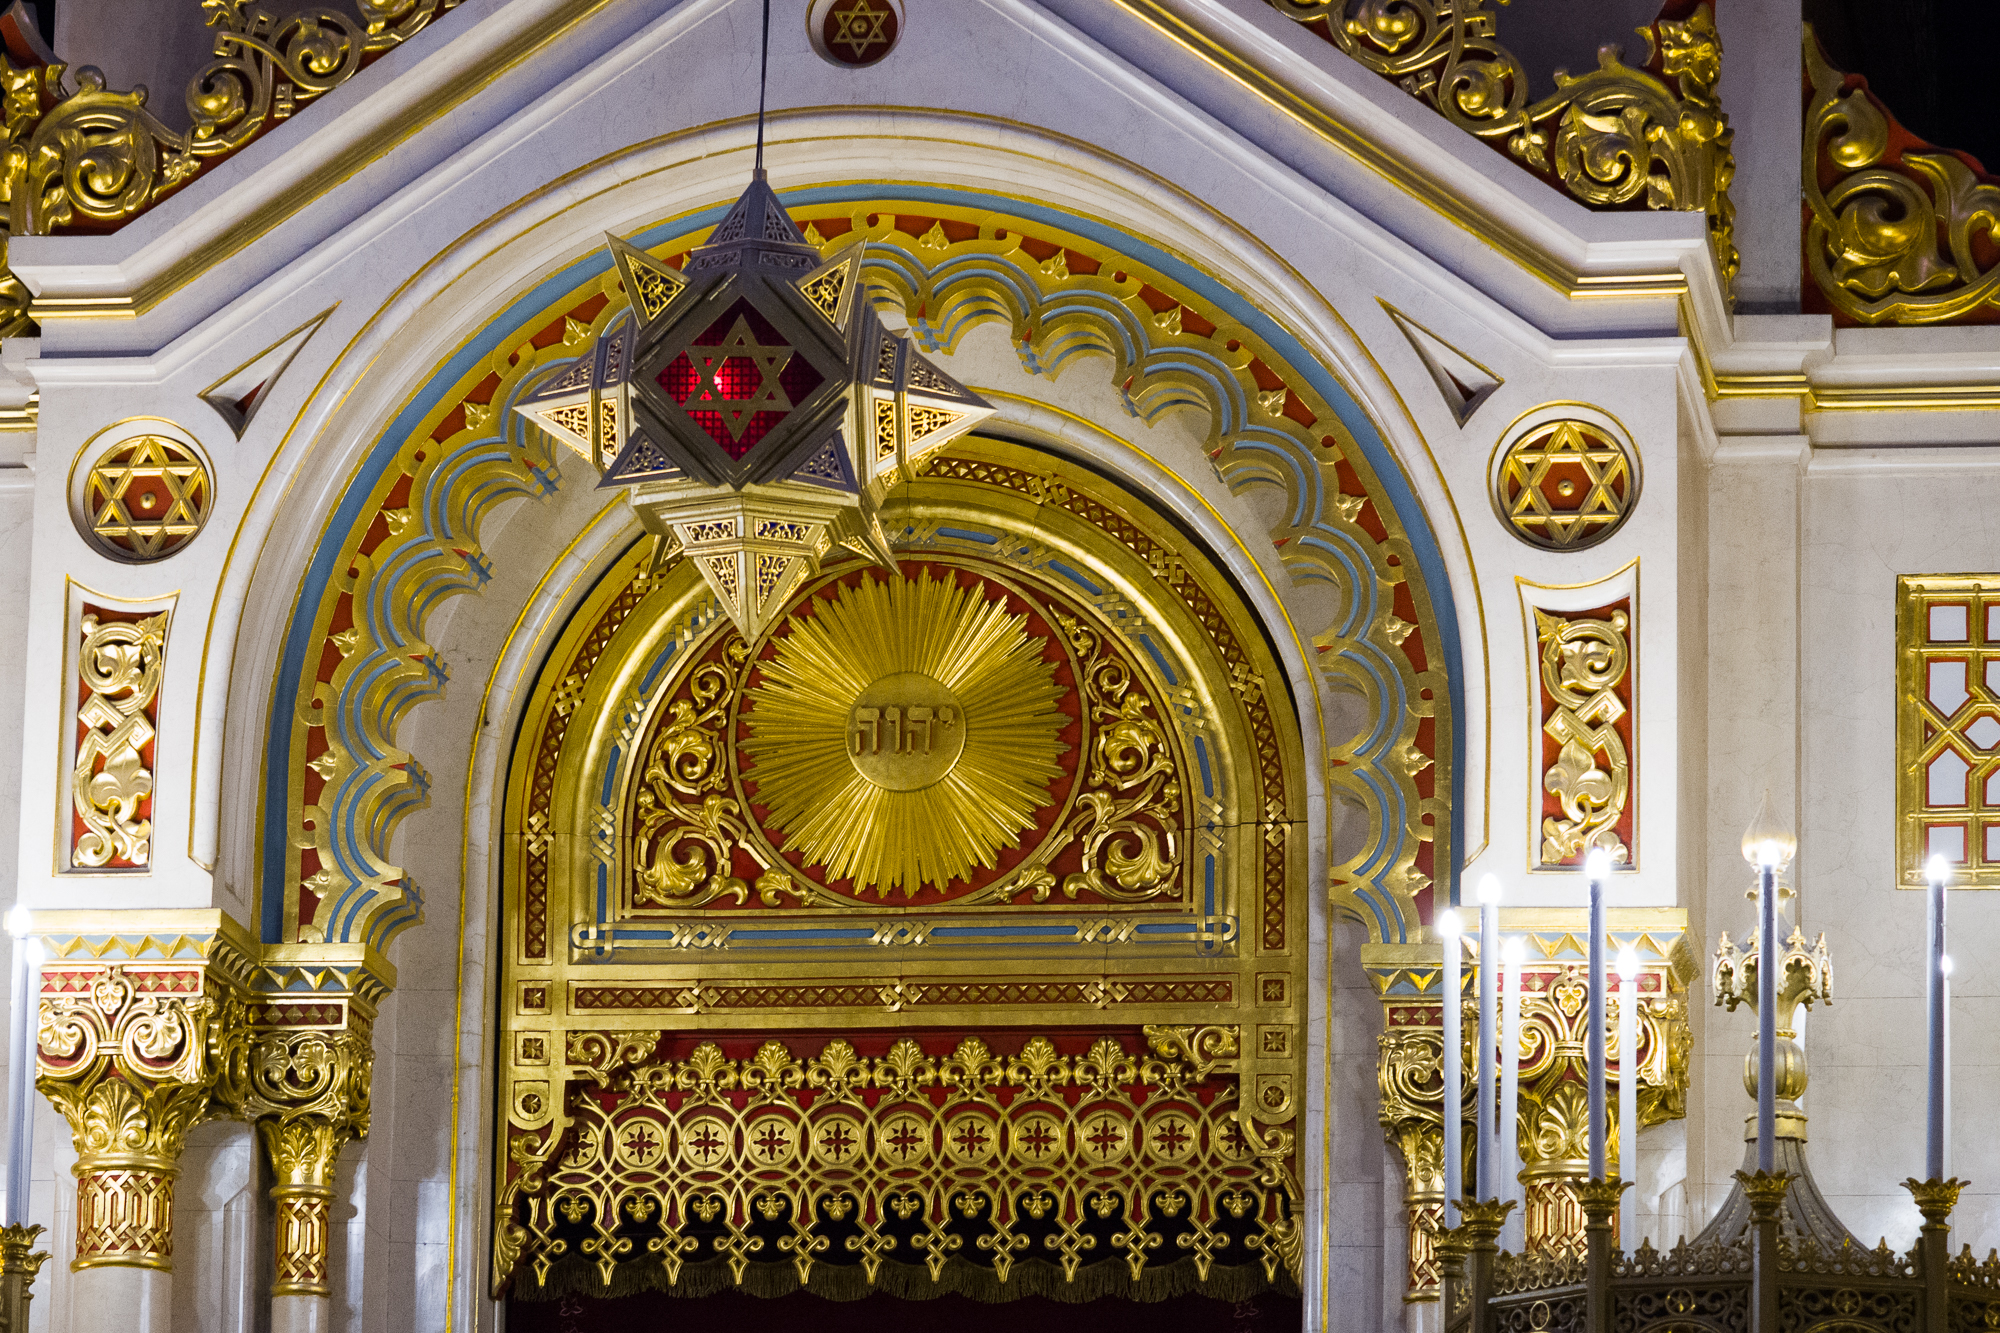 The Ark of the Torah in Dohány Synogogue